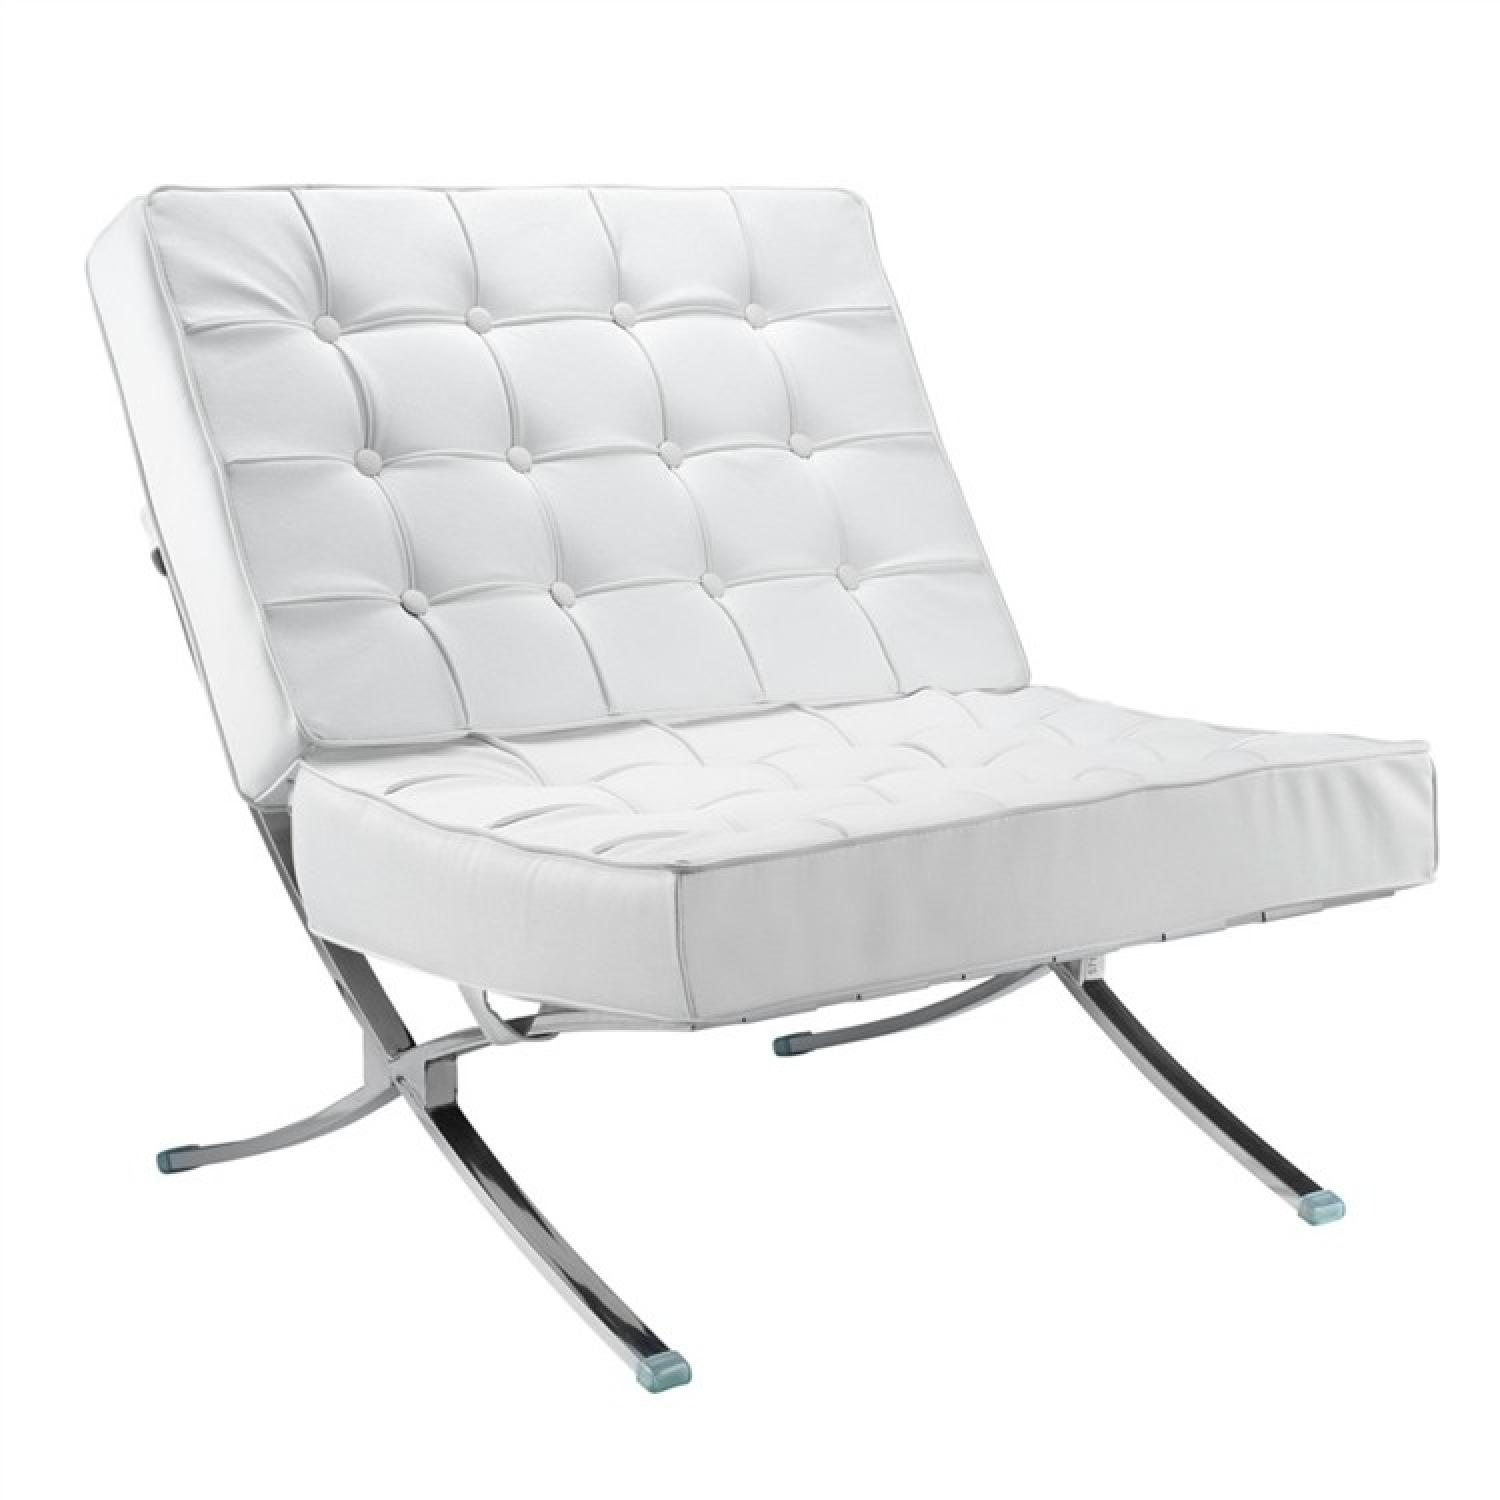 Classic Mid-Century Style Accent Chair in White Leather